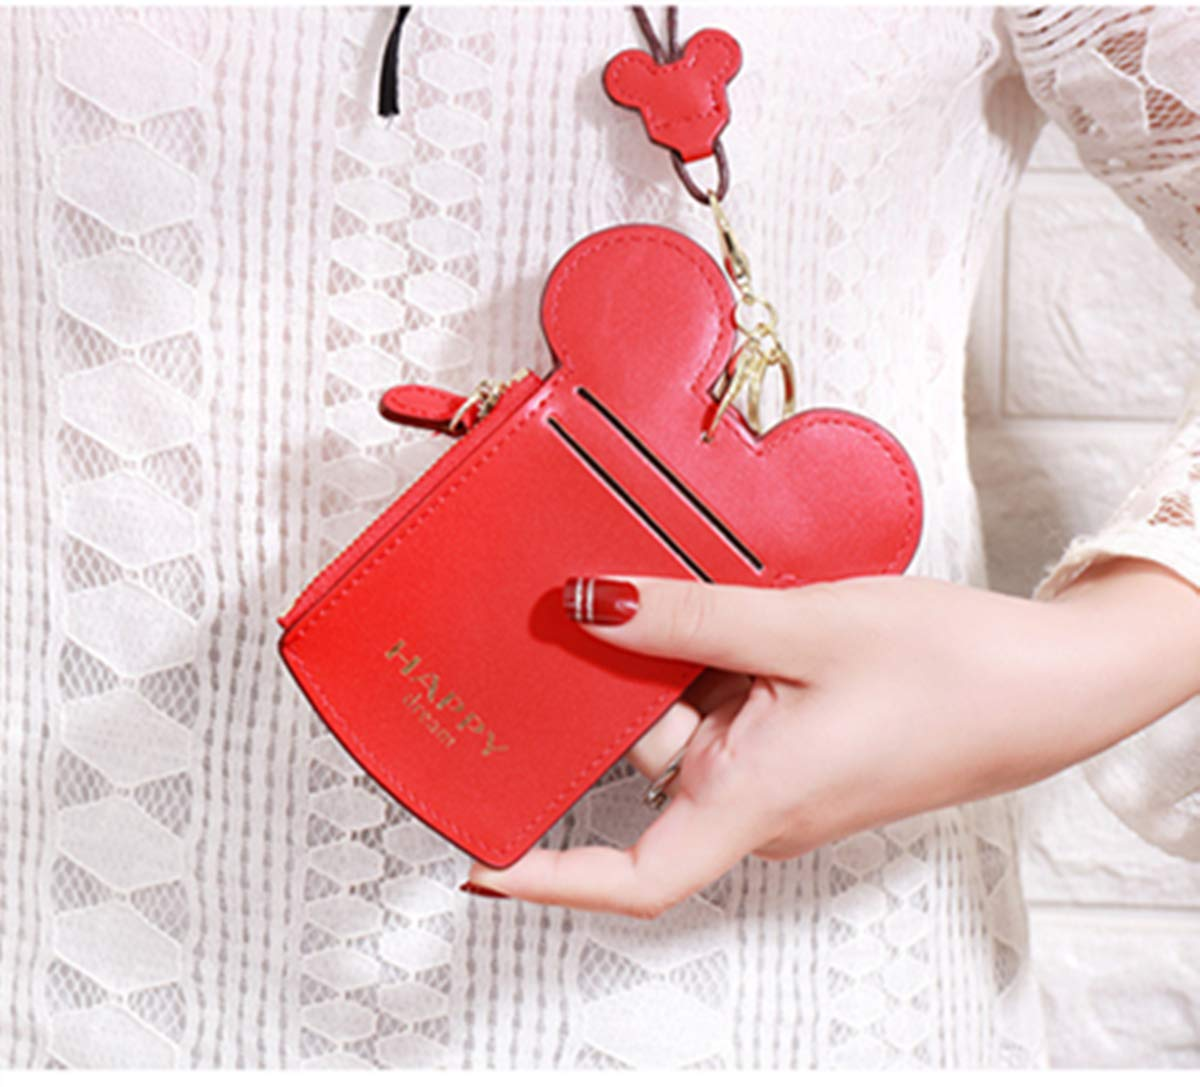 YIEASDA Travel Neck Pouch, Cute Small Fashion Student ID Card Case Holder Coin Wallet Purse for Women/Girls/Children (Red 2pack) by YIEASDA (Image #6)